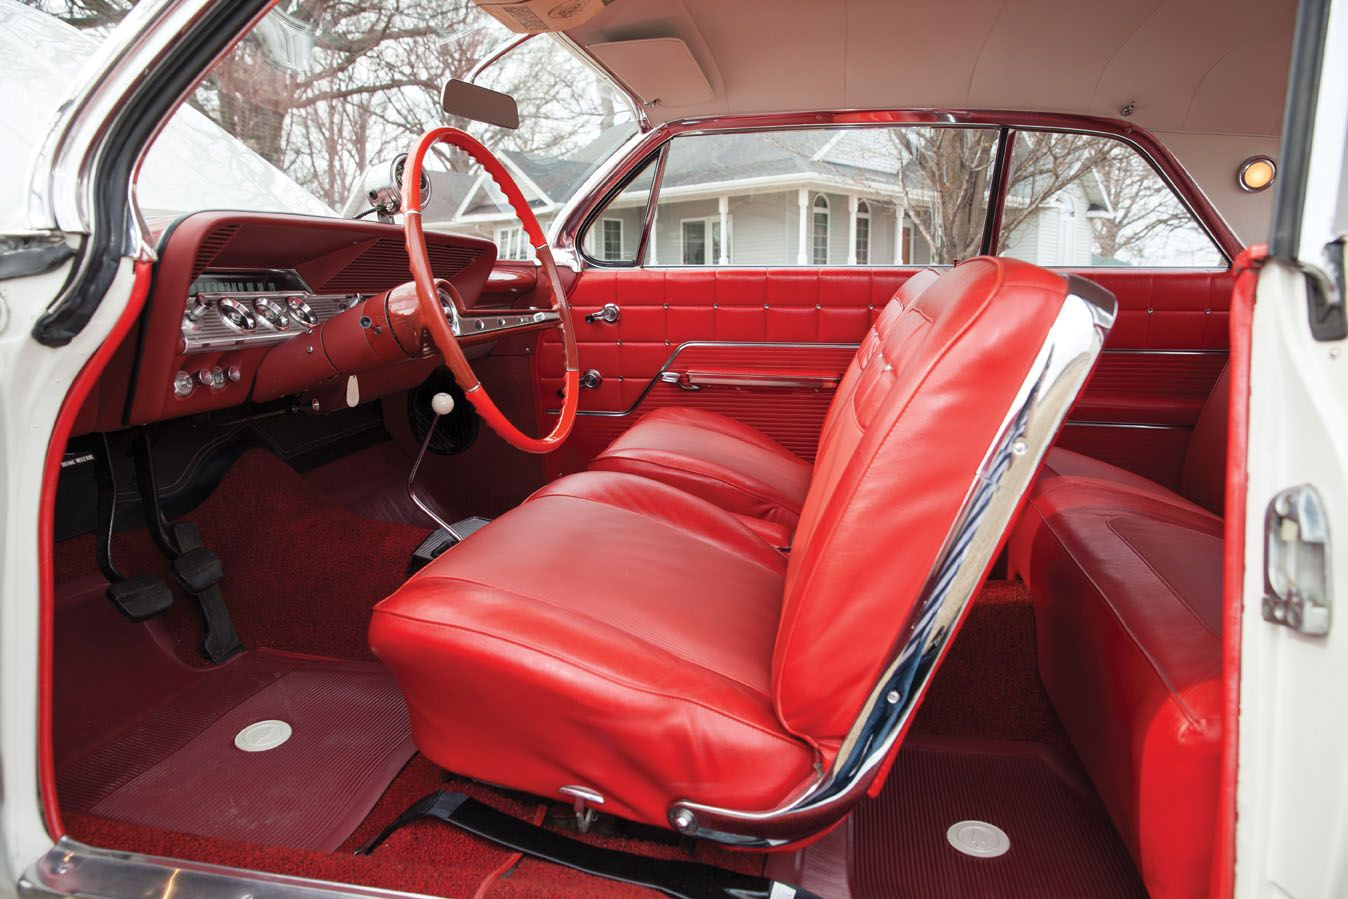 Convertible 62 chevy impala ss convertible for sale : 1962-Chevrolet-Impala-SS-409-Lightweight-Sport-Coupe_c-2014 ...